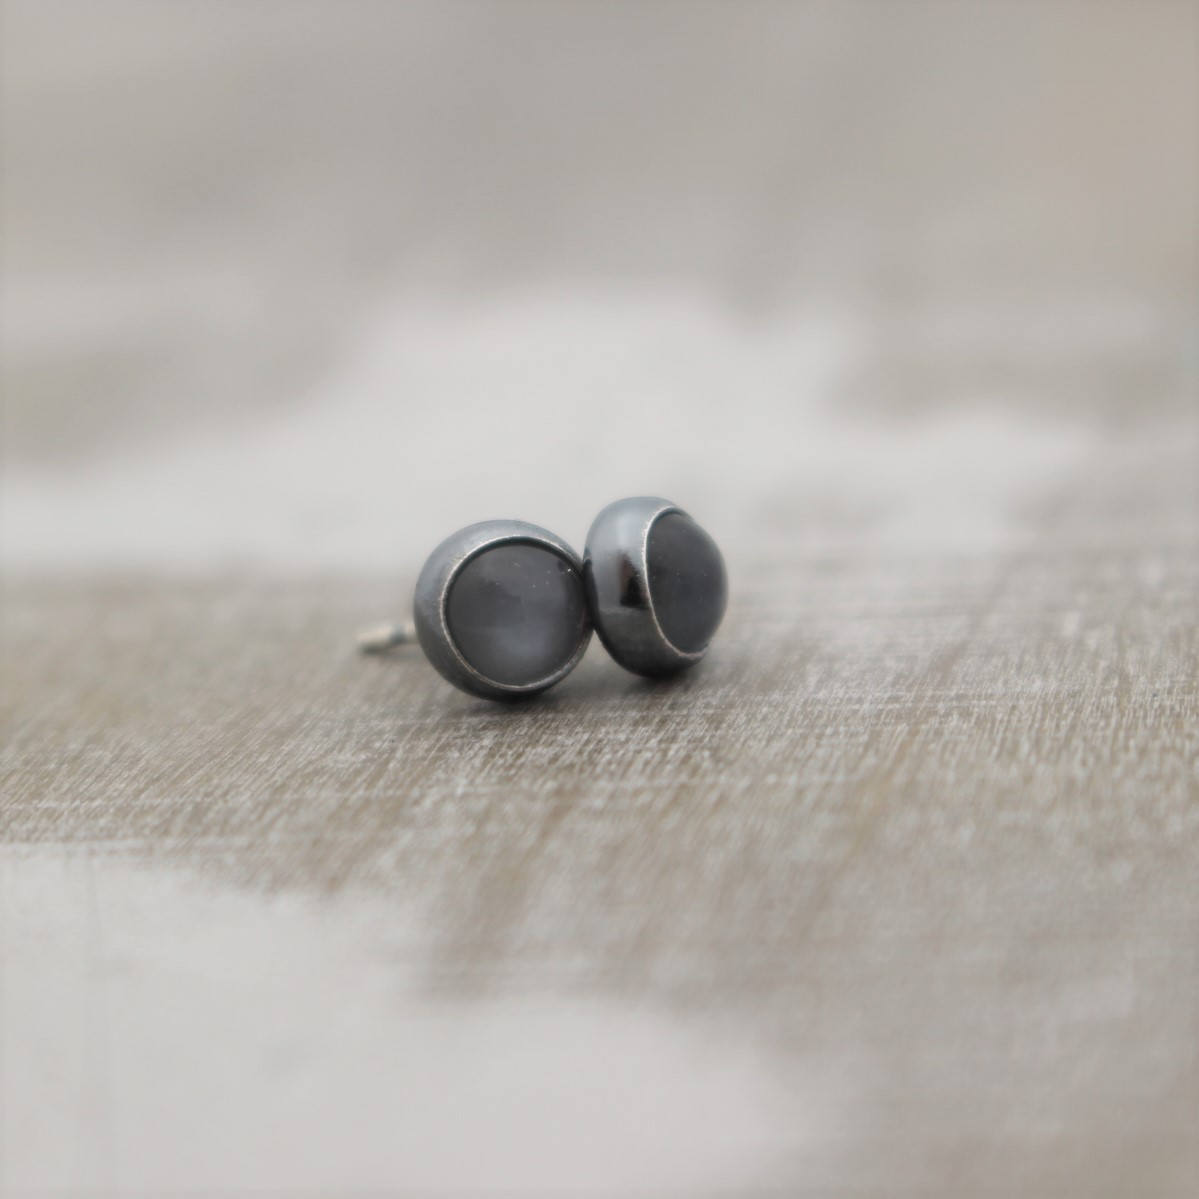 Gray Moonstone Stud Earrings - 6mm studs